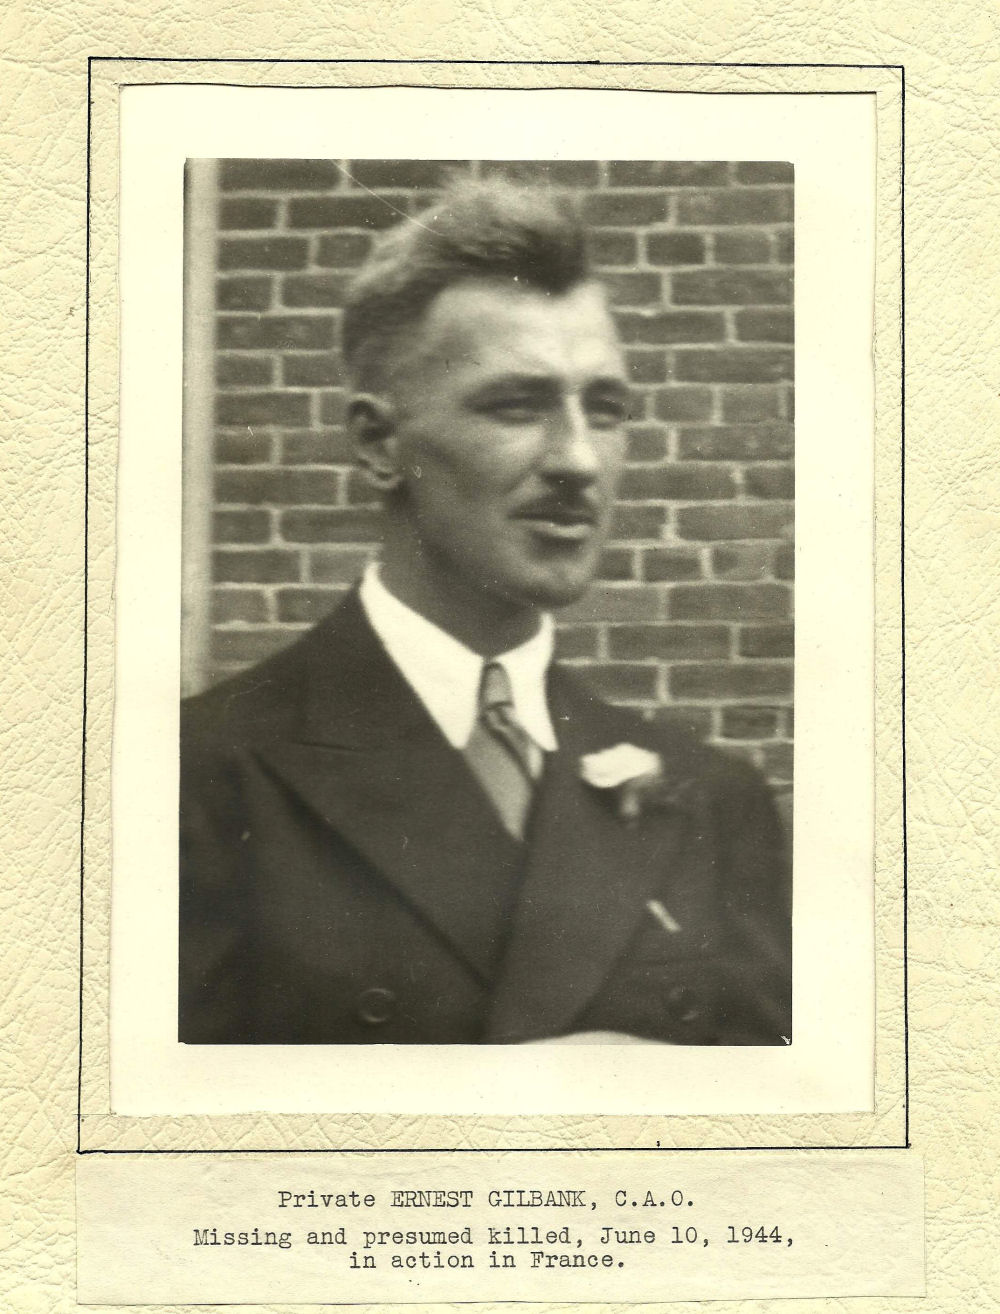 Photo of Ernest Gilbank